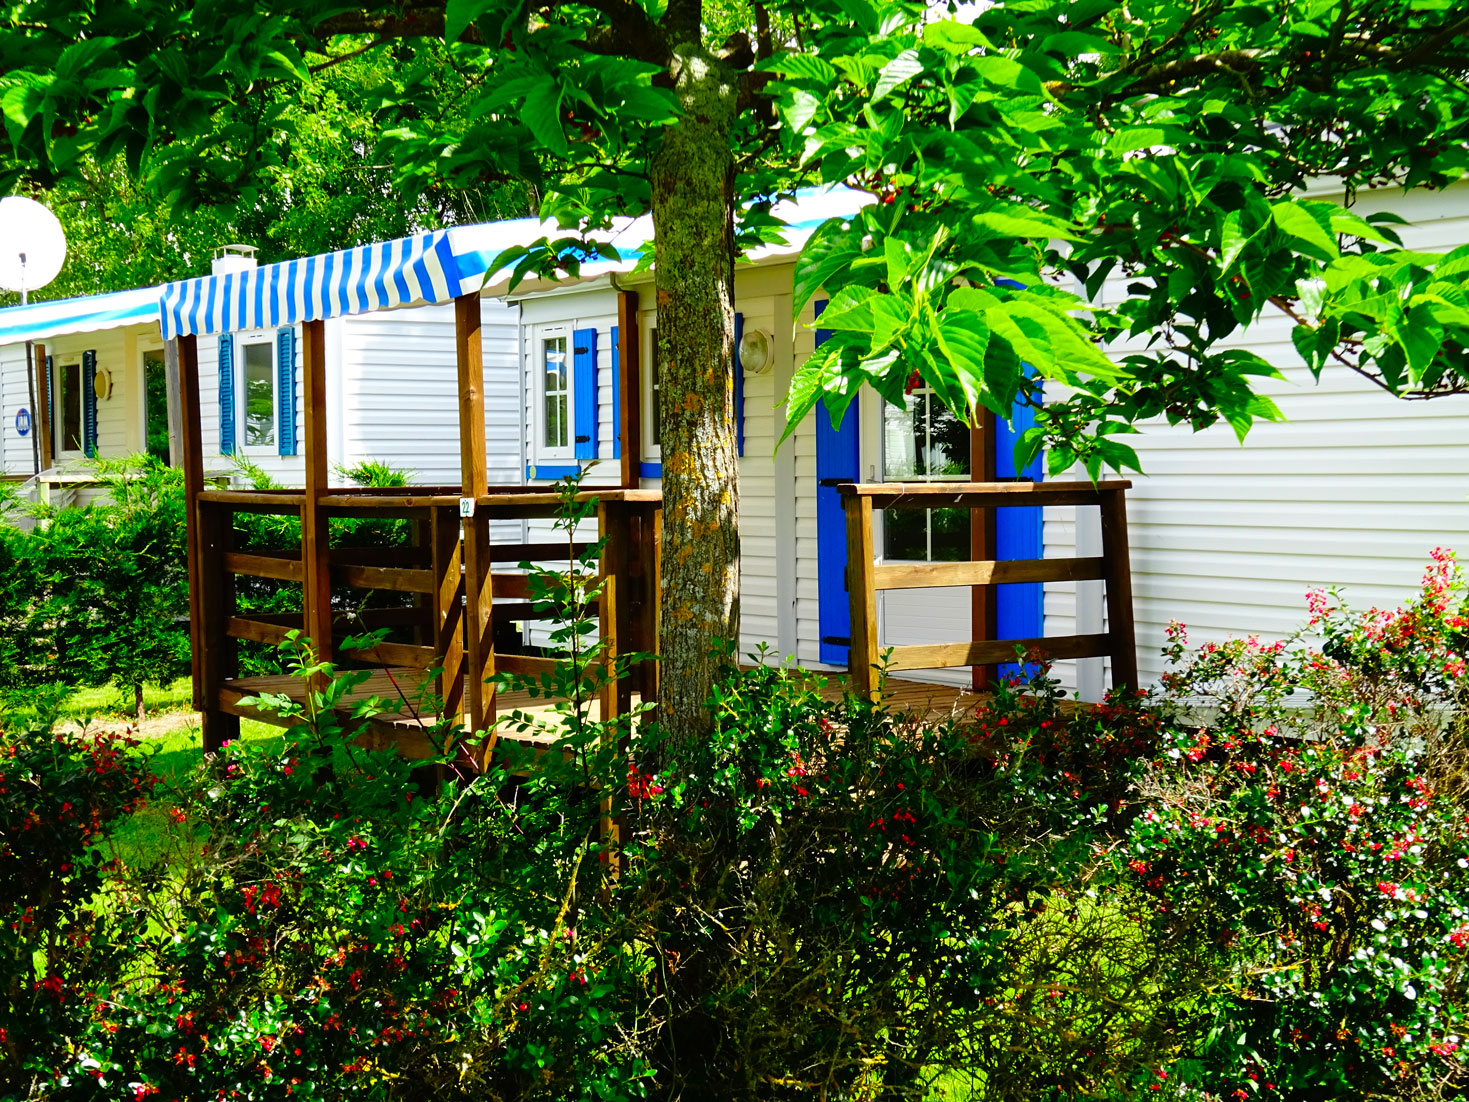 galerie-location-mobil-home-6-8-personnes-evasion-zoom-exterieur-camping-moricq